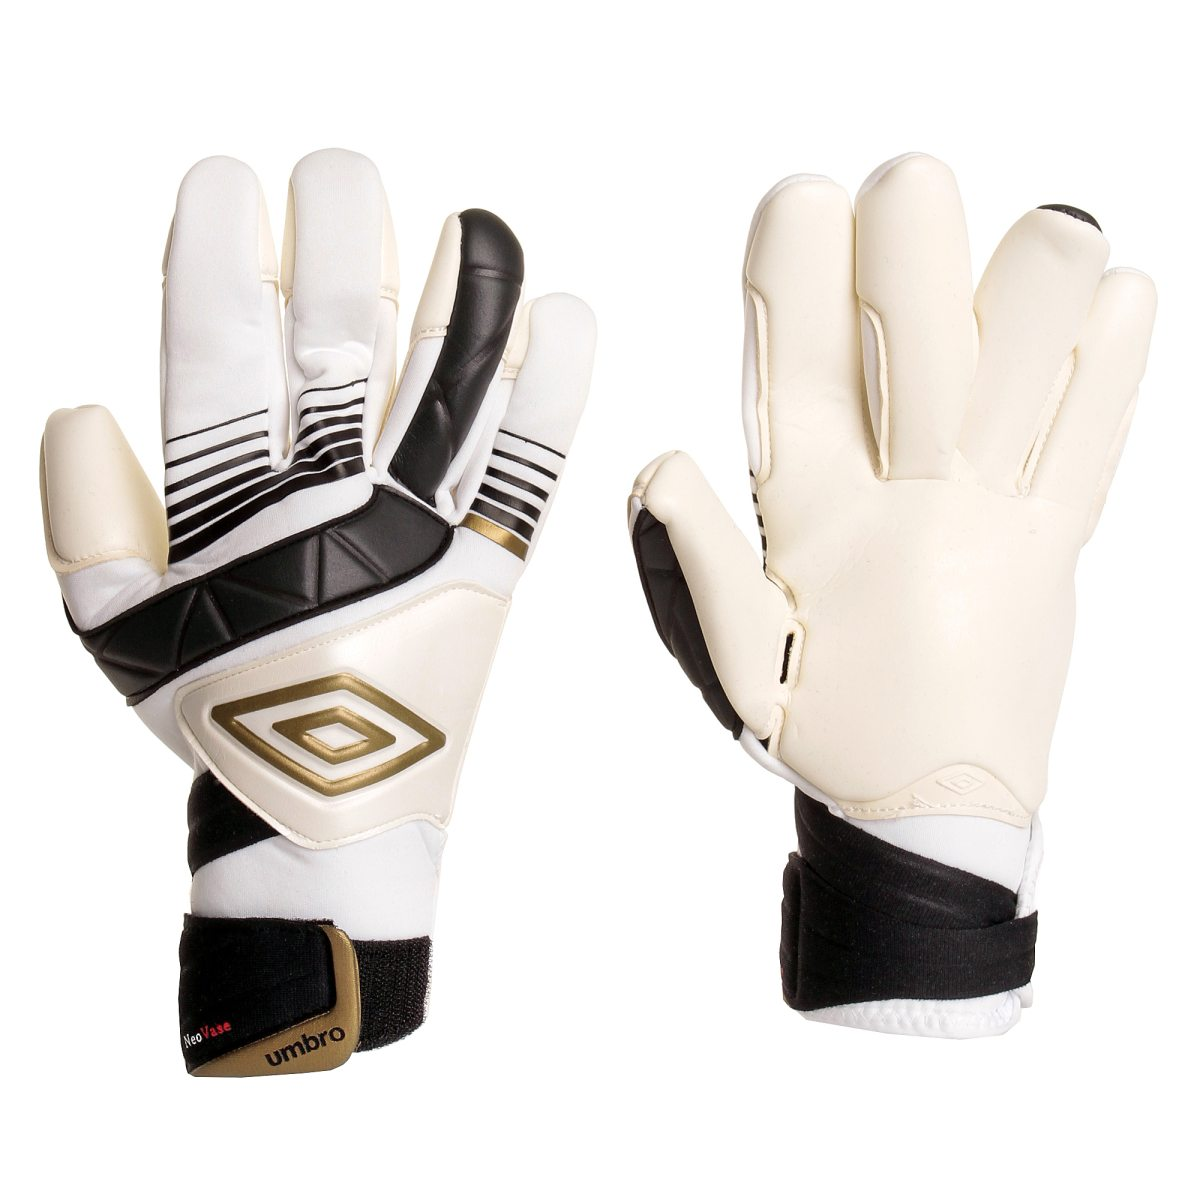 7cf2ba52 Find every shop in the world selling umbro neo fotball fotballer at  PricePi.com